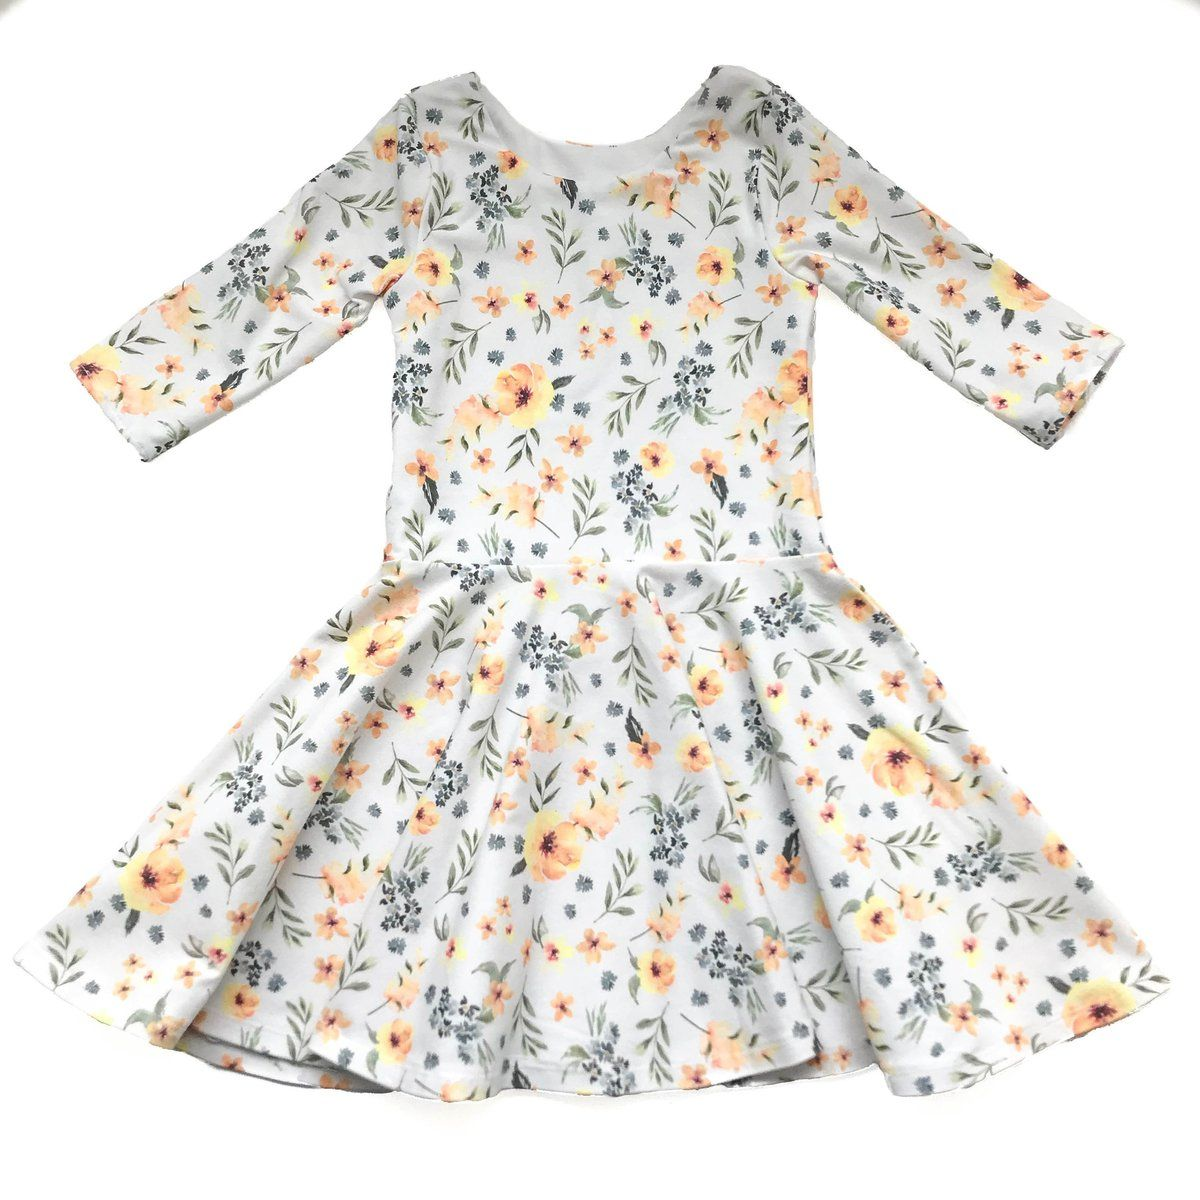 8bfa799671395 This beautiful handmade yellow floral twirl dress is made of a comfy knit  cotton spandex material